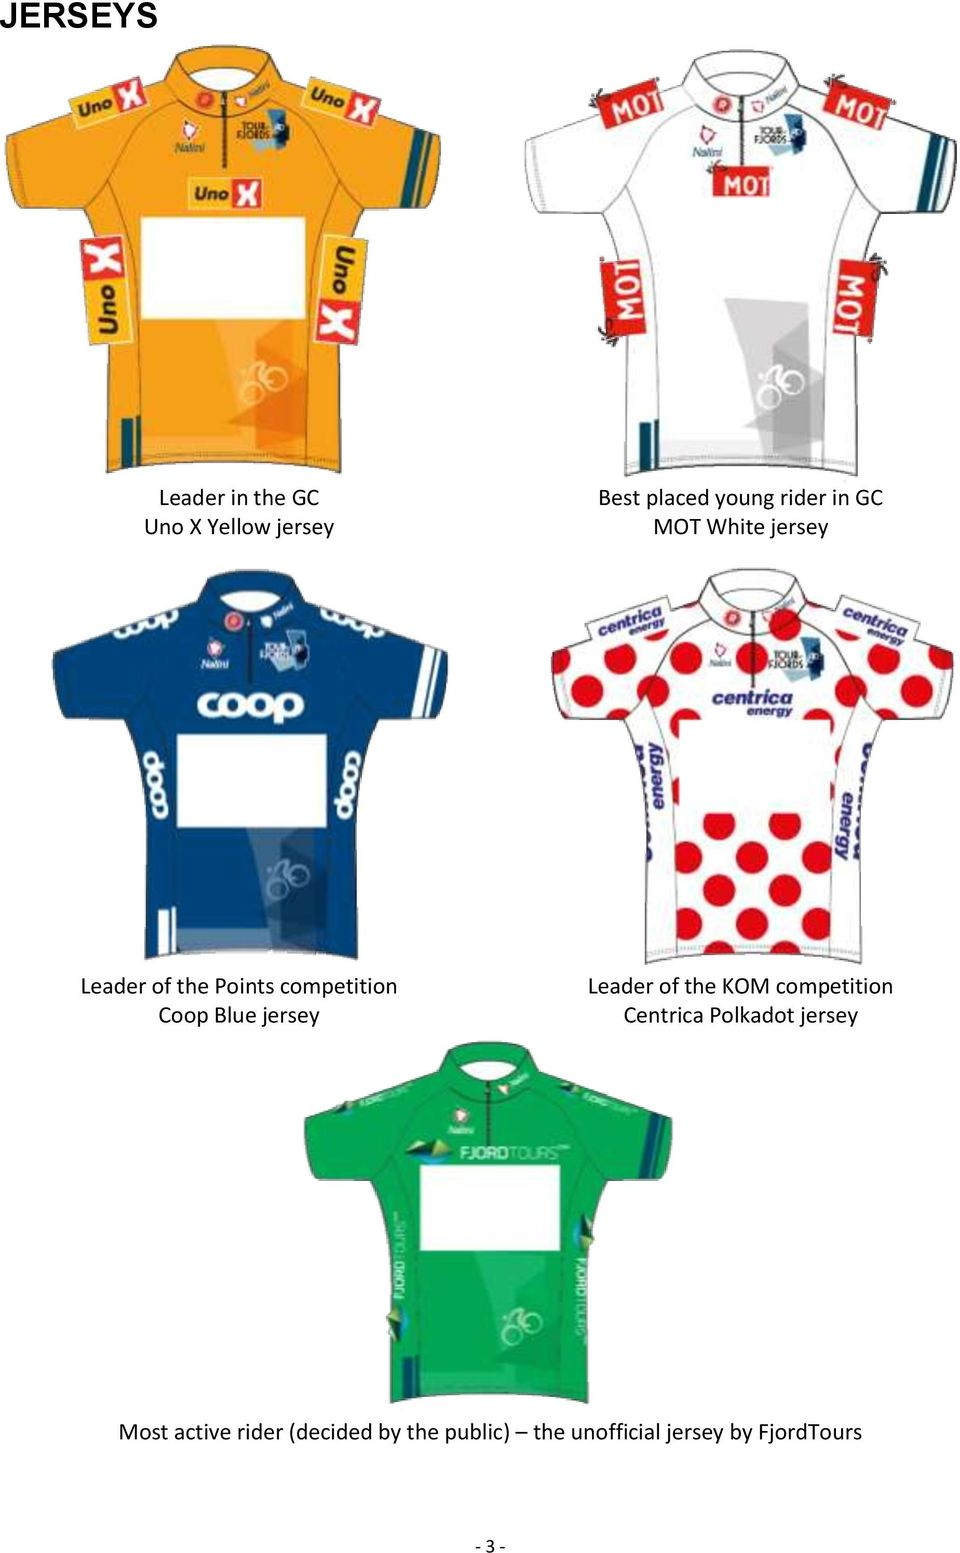 jersey Leader of the KOM competition Centrica Polkadot jersey Most